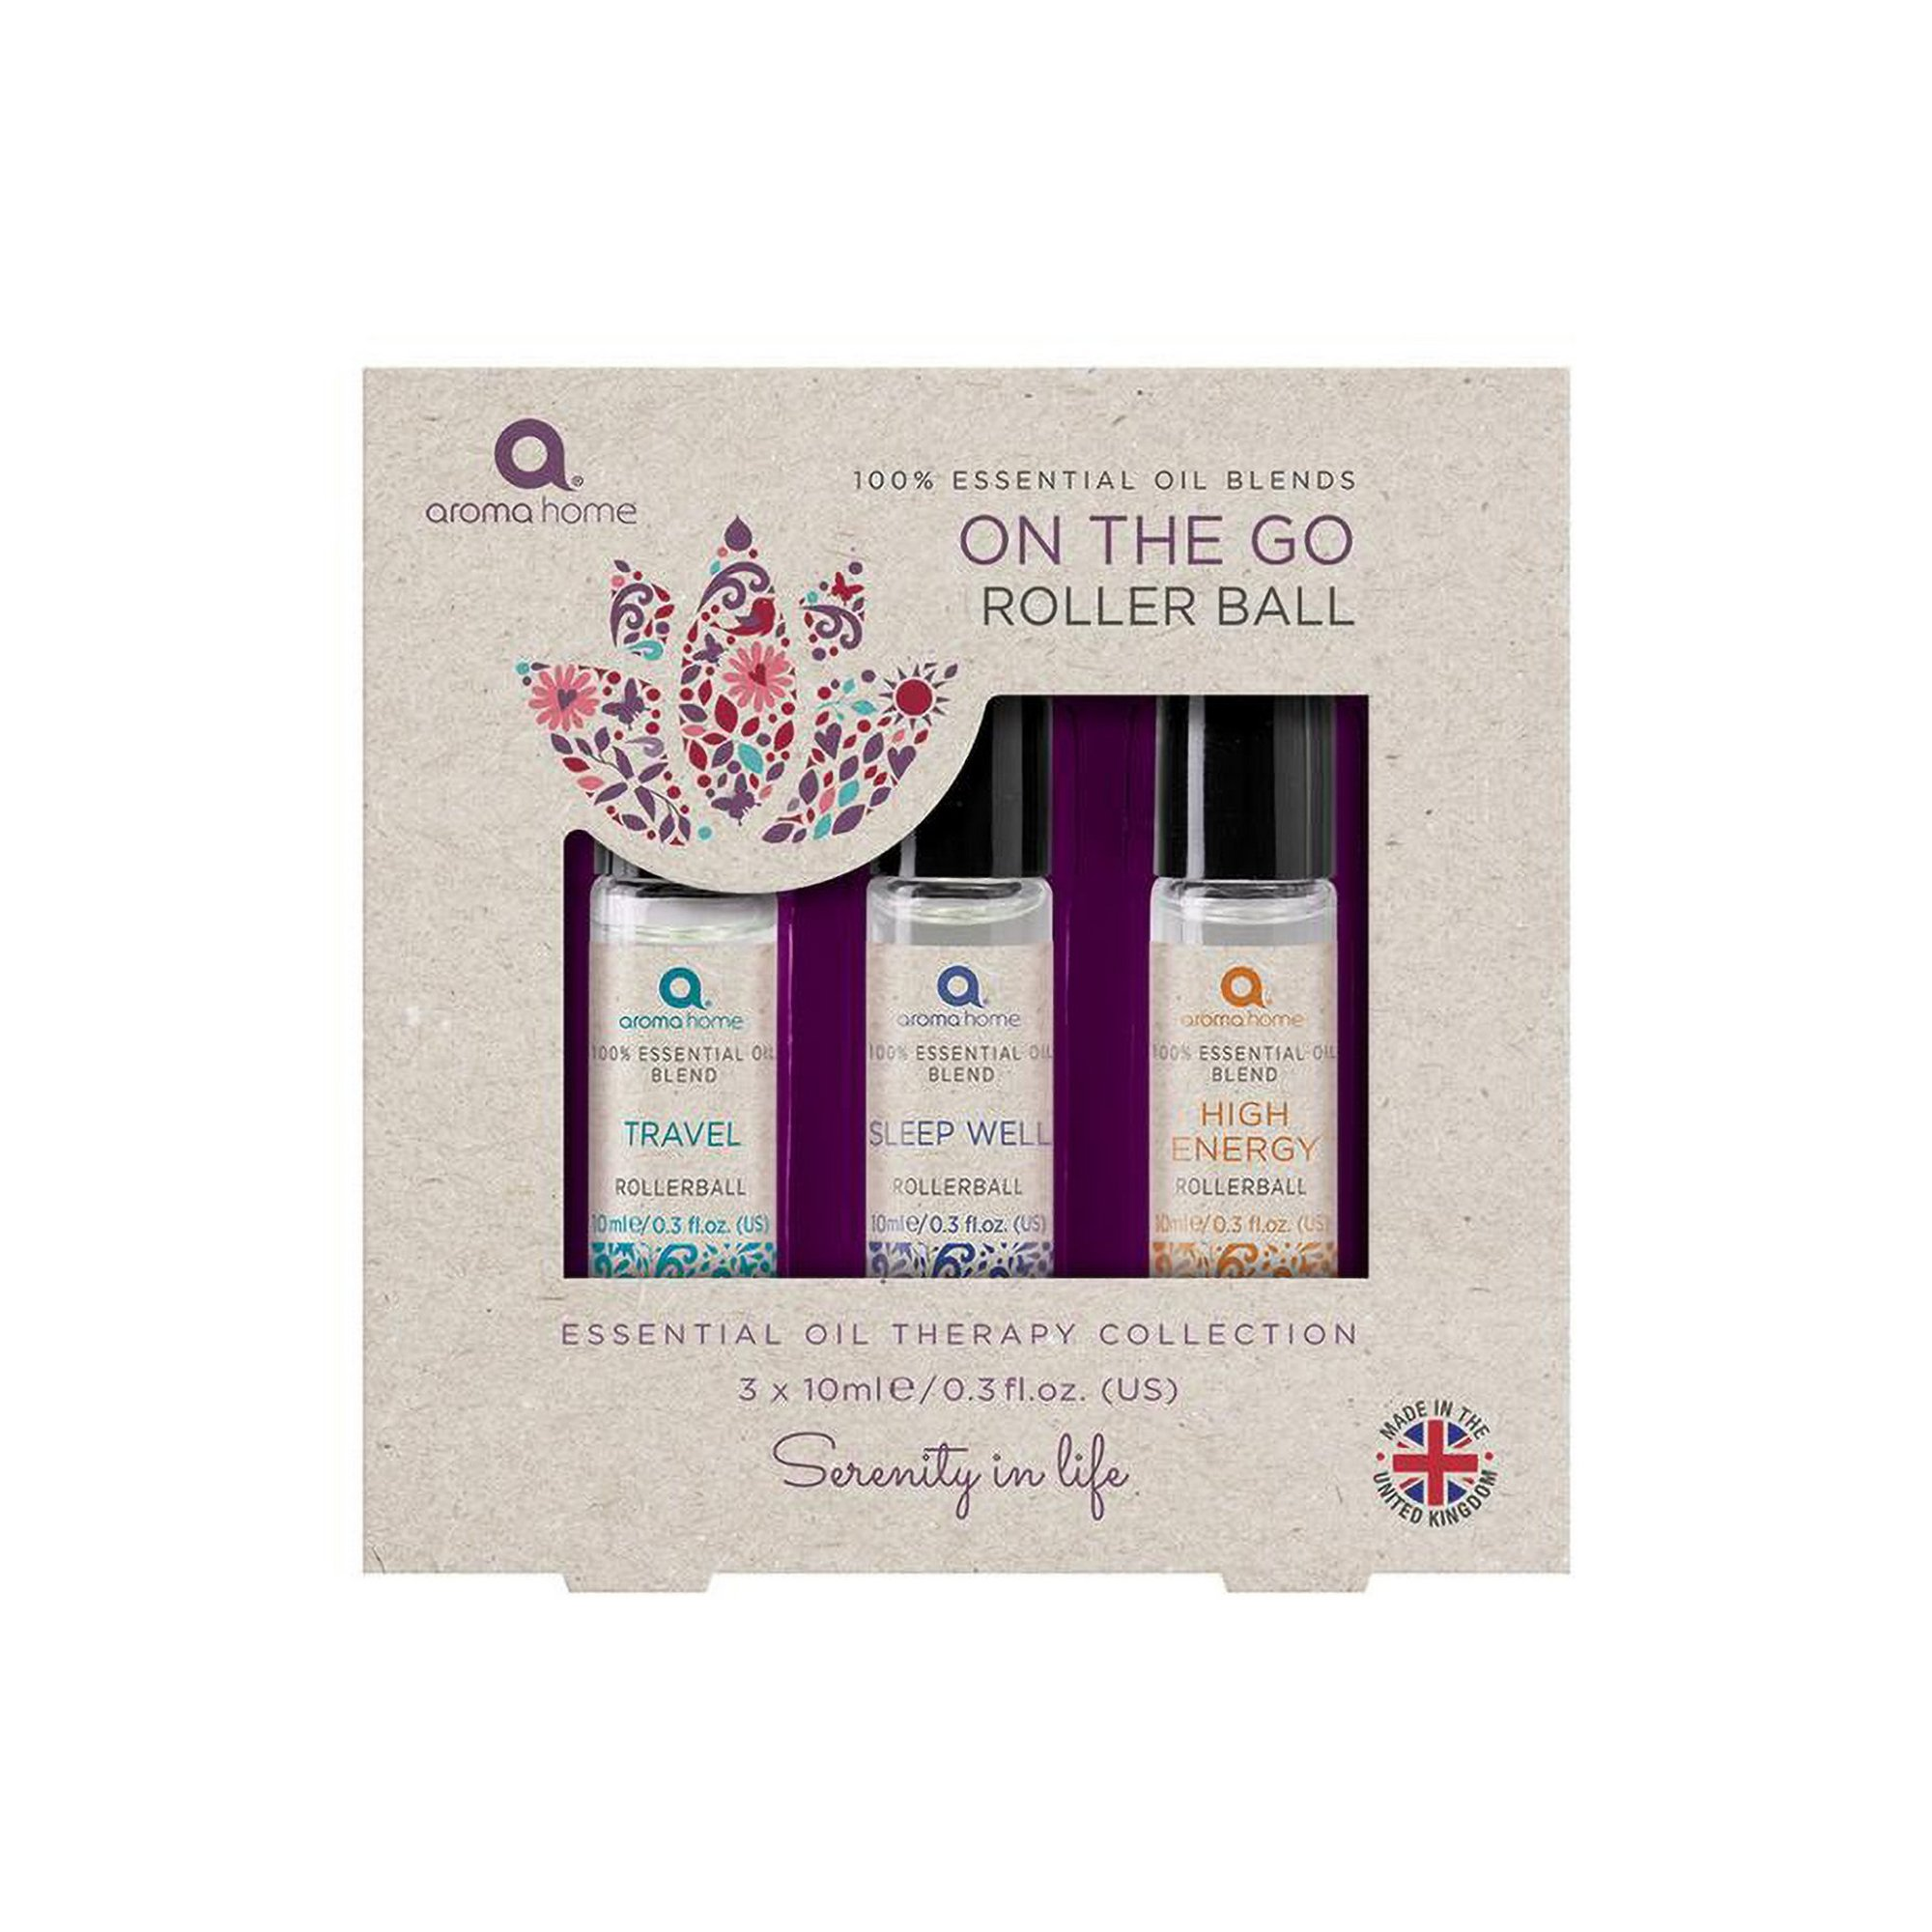 Image of Aroma Home Essentials Pack of 3 On the Go Rollerball Blend Oils